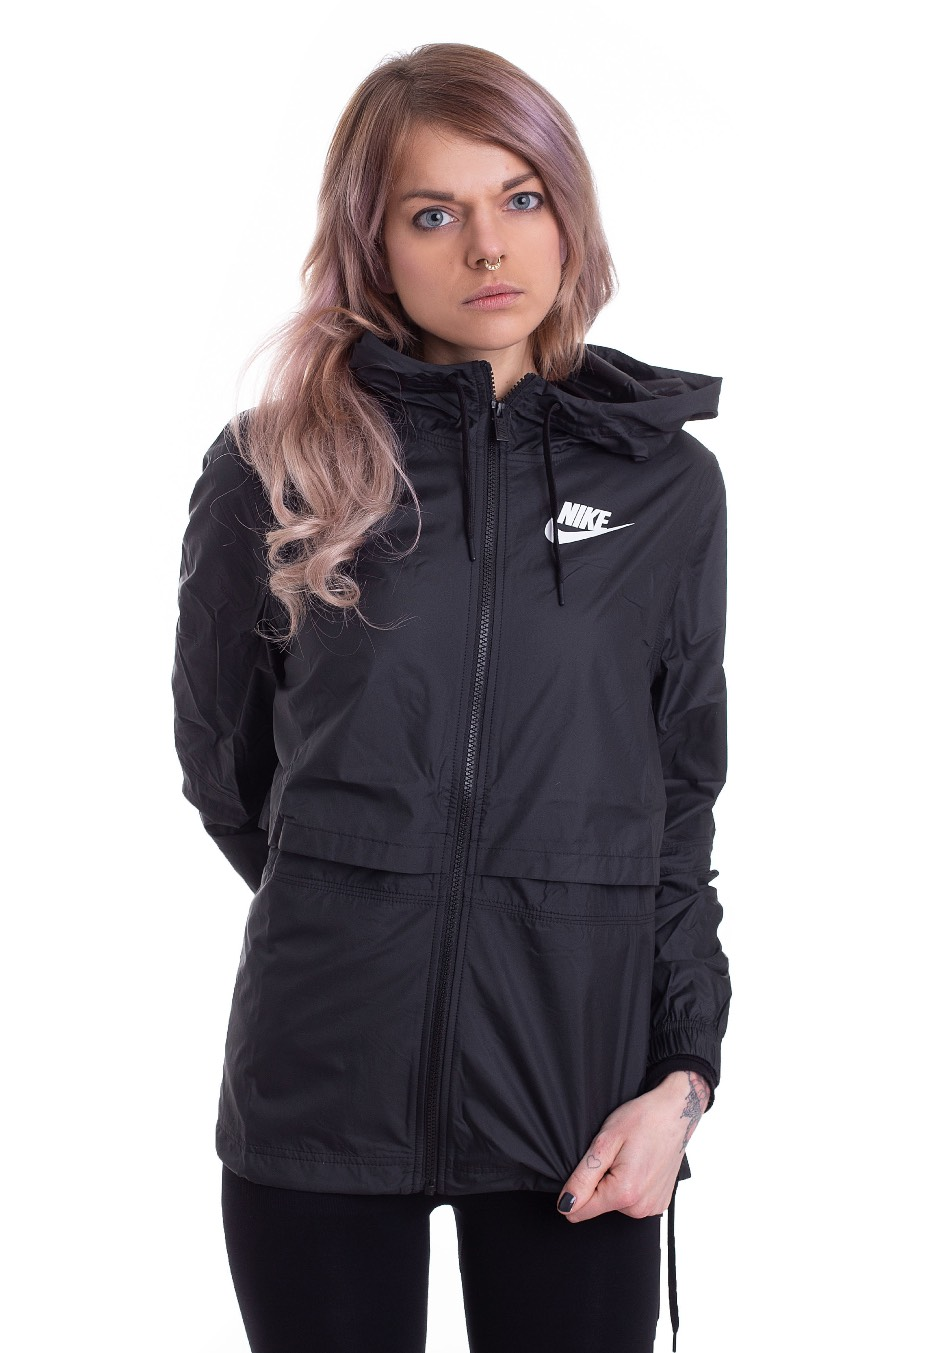 be51fd6ade6a Nike - Sportswear Black Black Black White - Windbreaker - Streetwear Shop -  Impericon.com UK